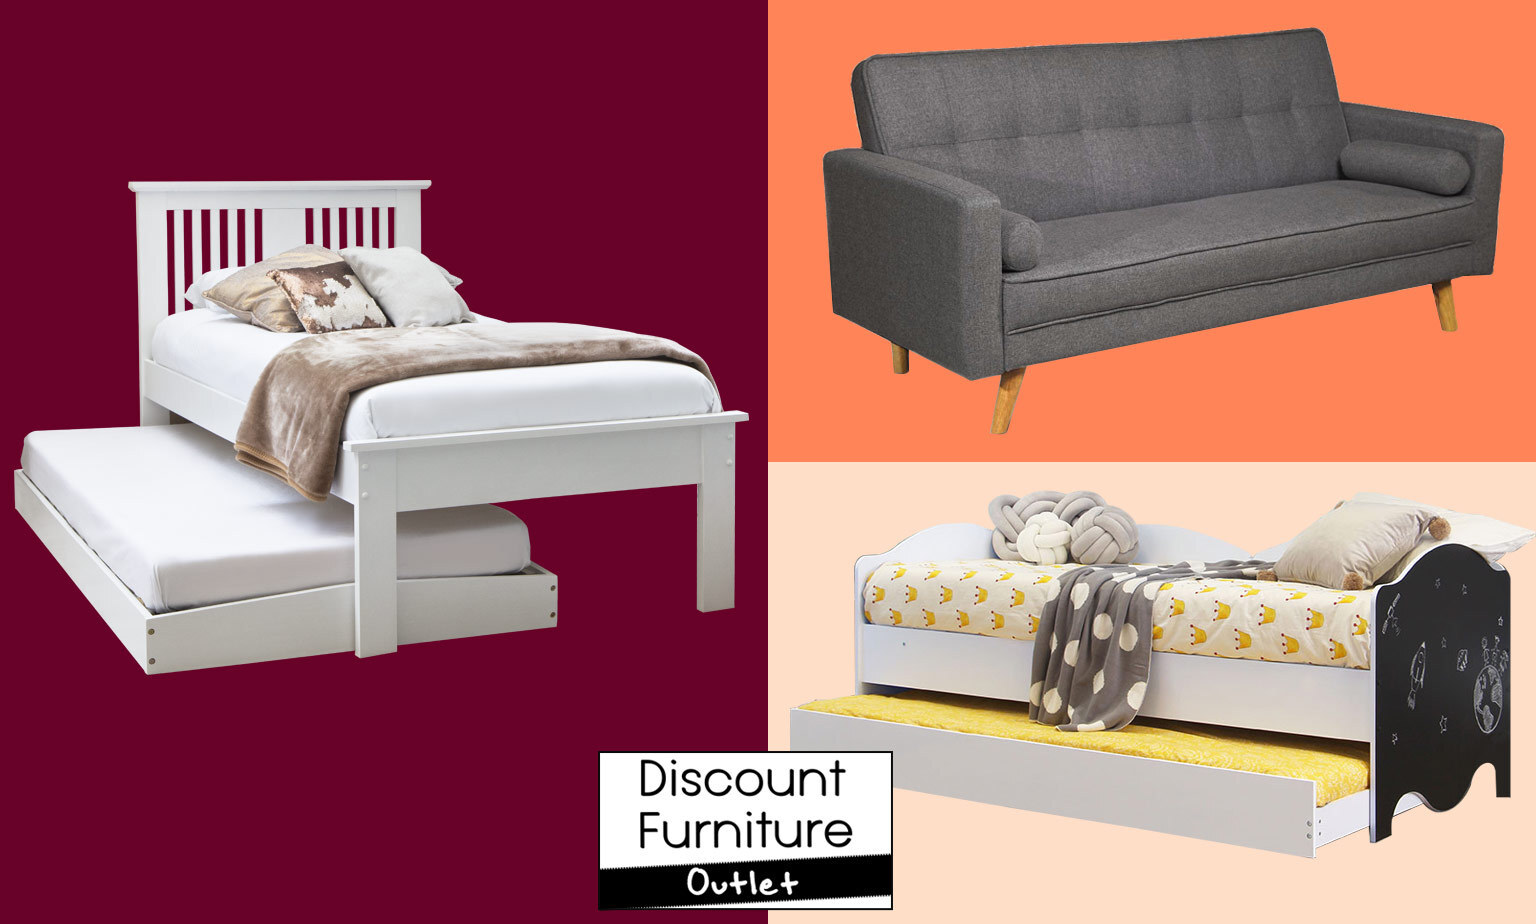 15% off Discount Furniture Outlet